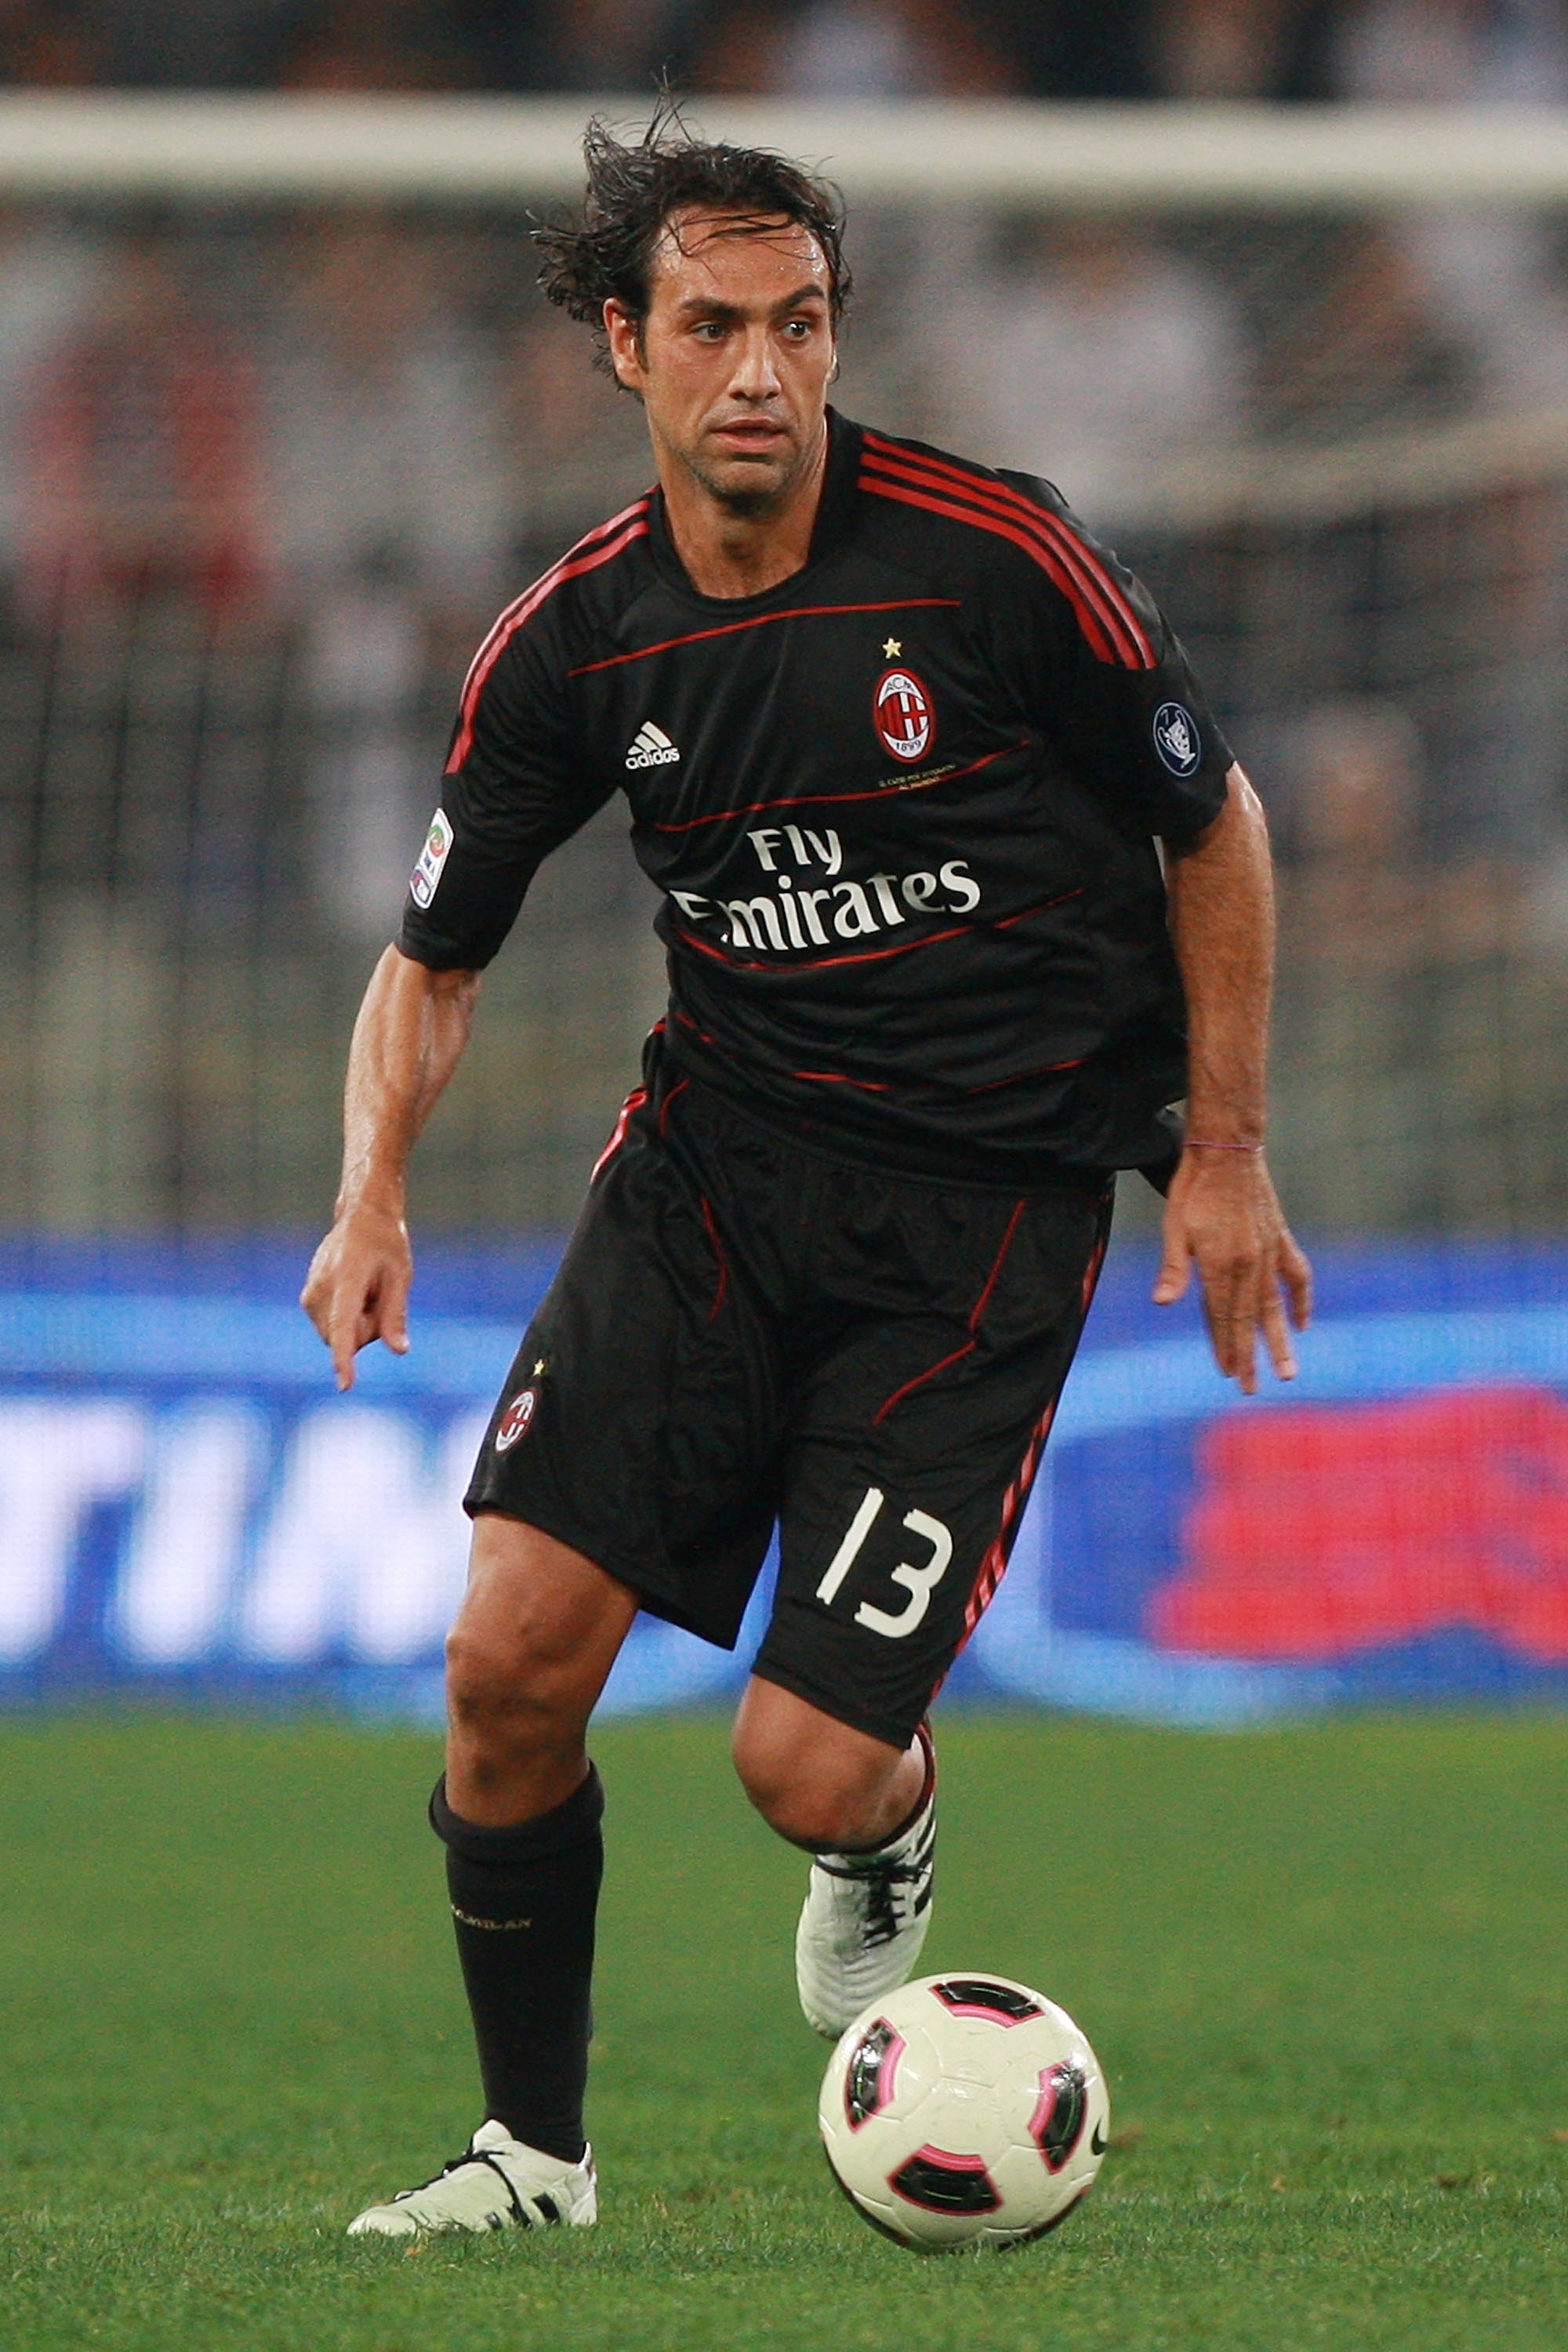 Alessandro Nesta is one of the few that has played his entire career in Serie A.